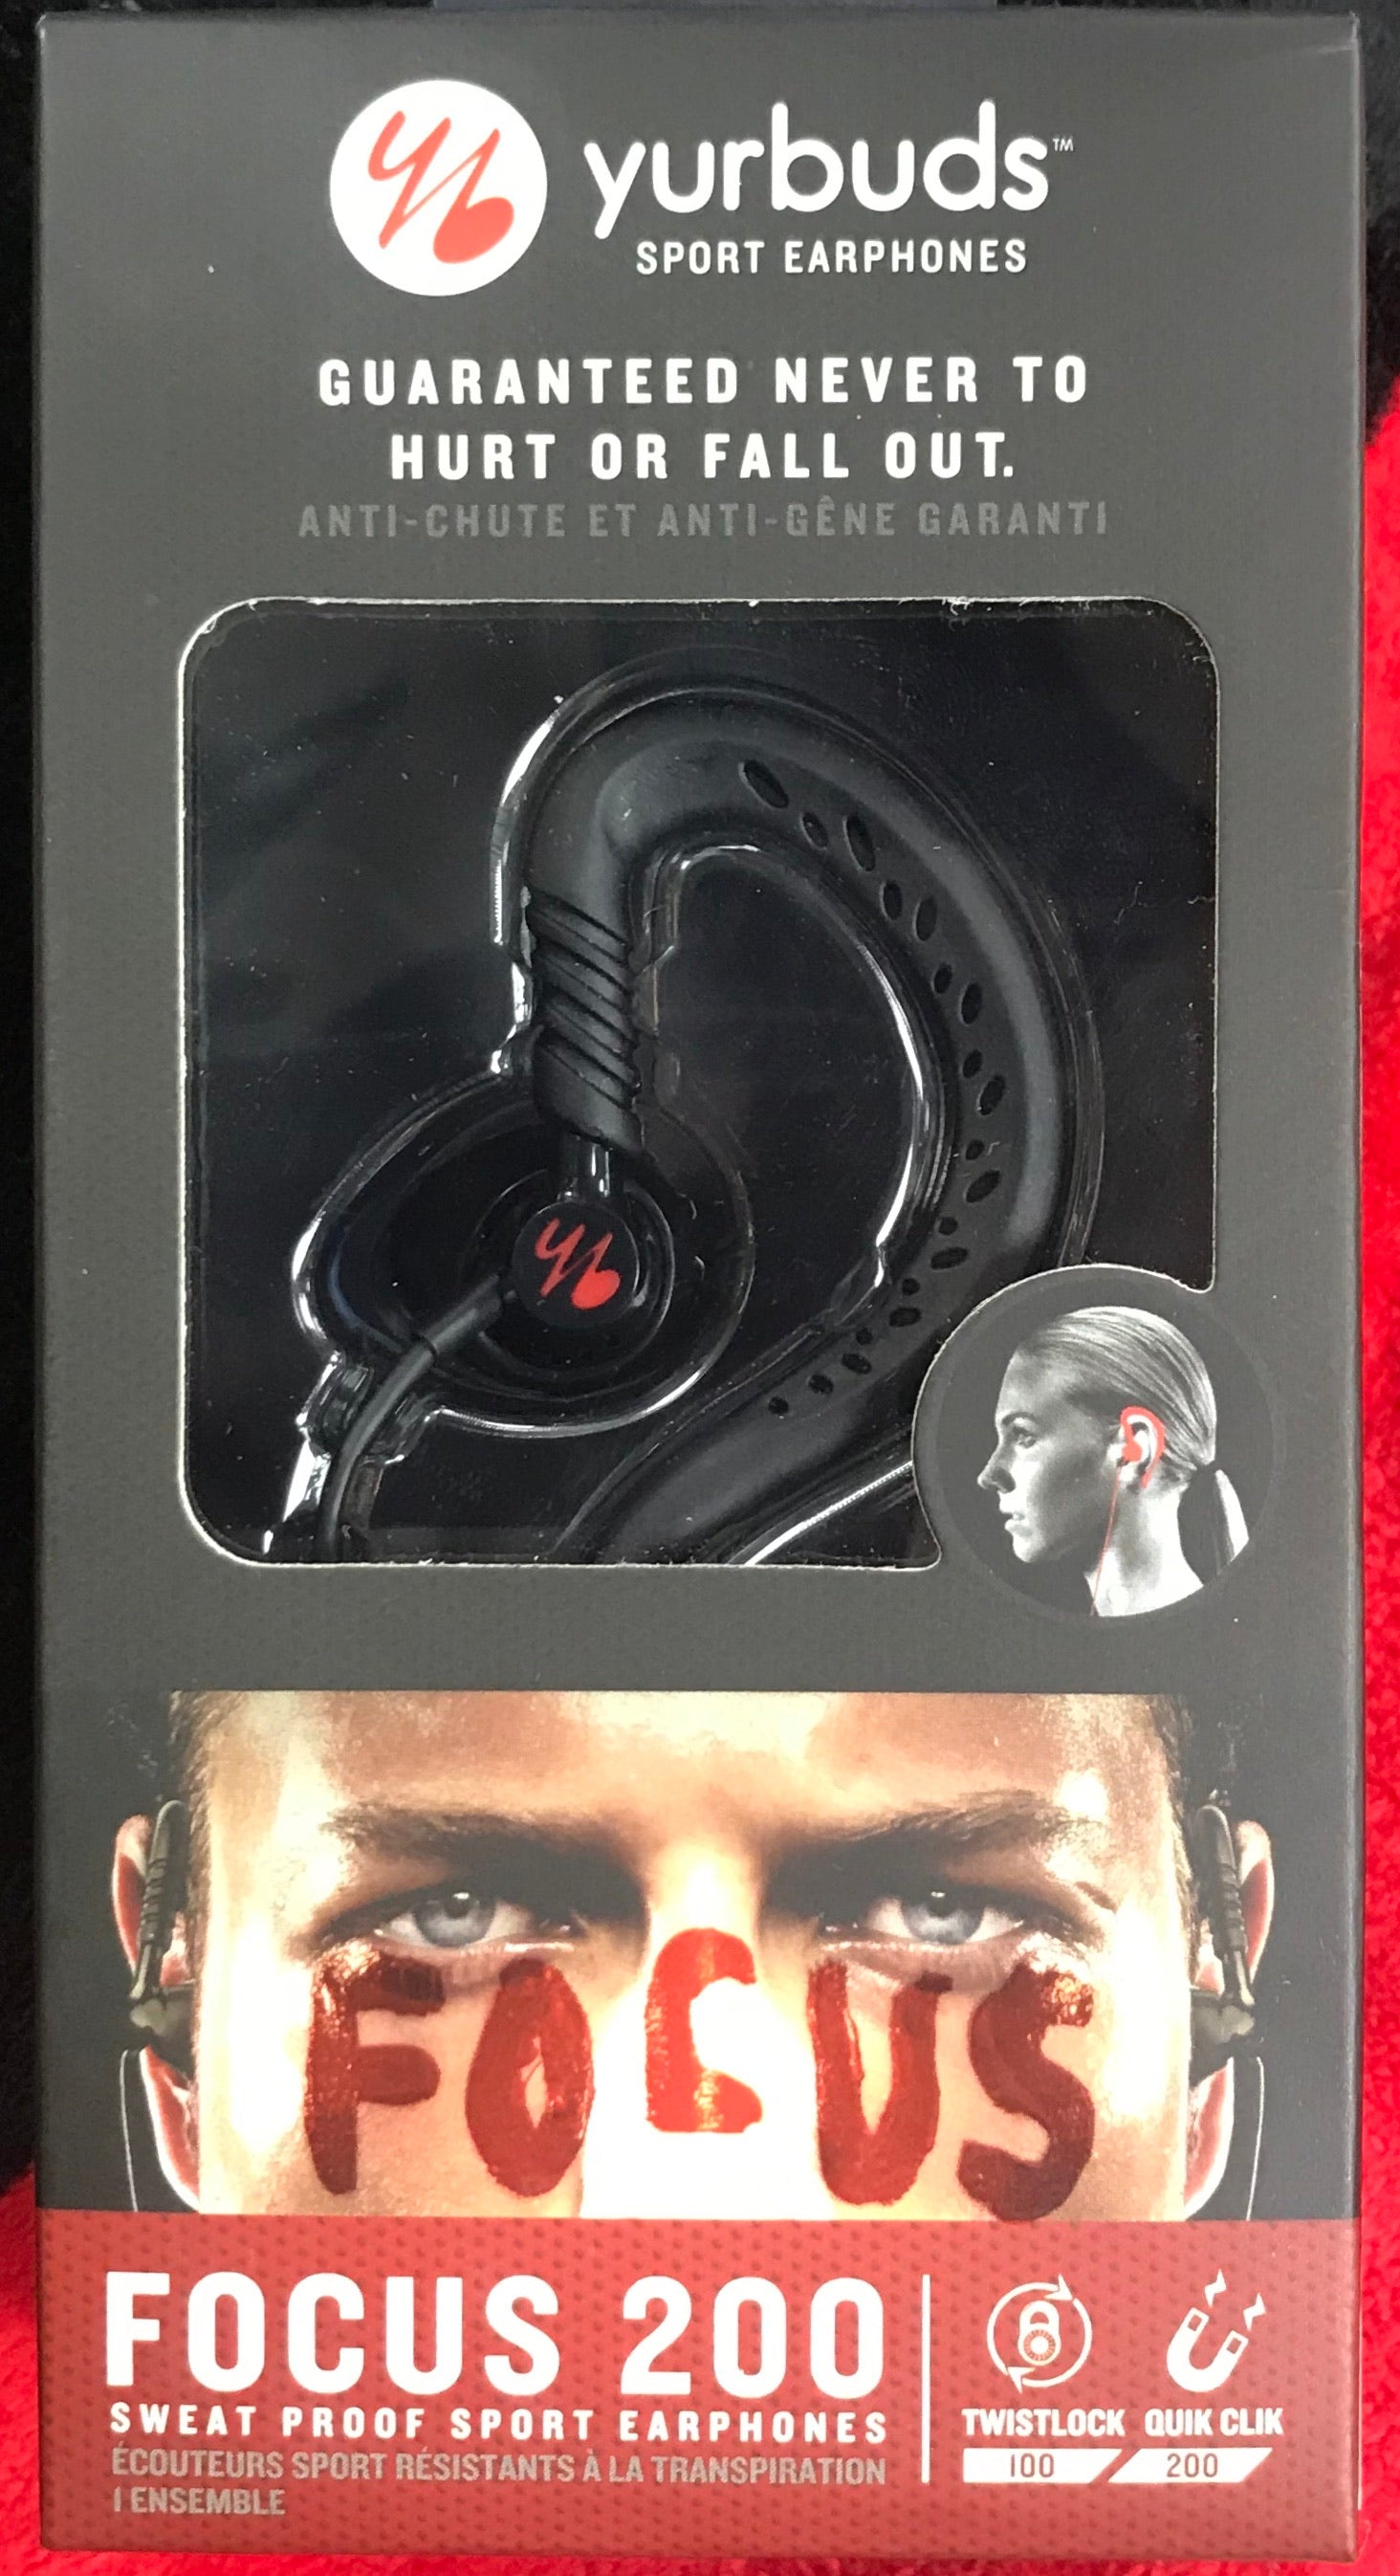 Yurbuds Sports Earphones